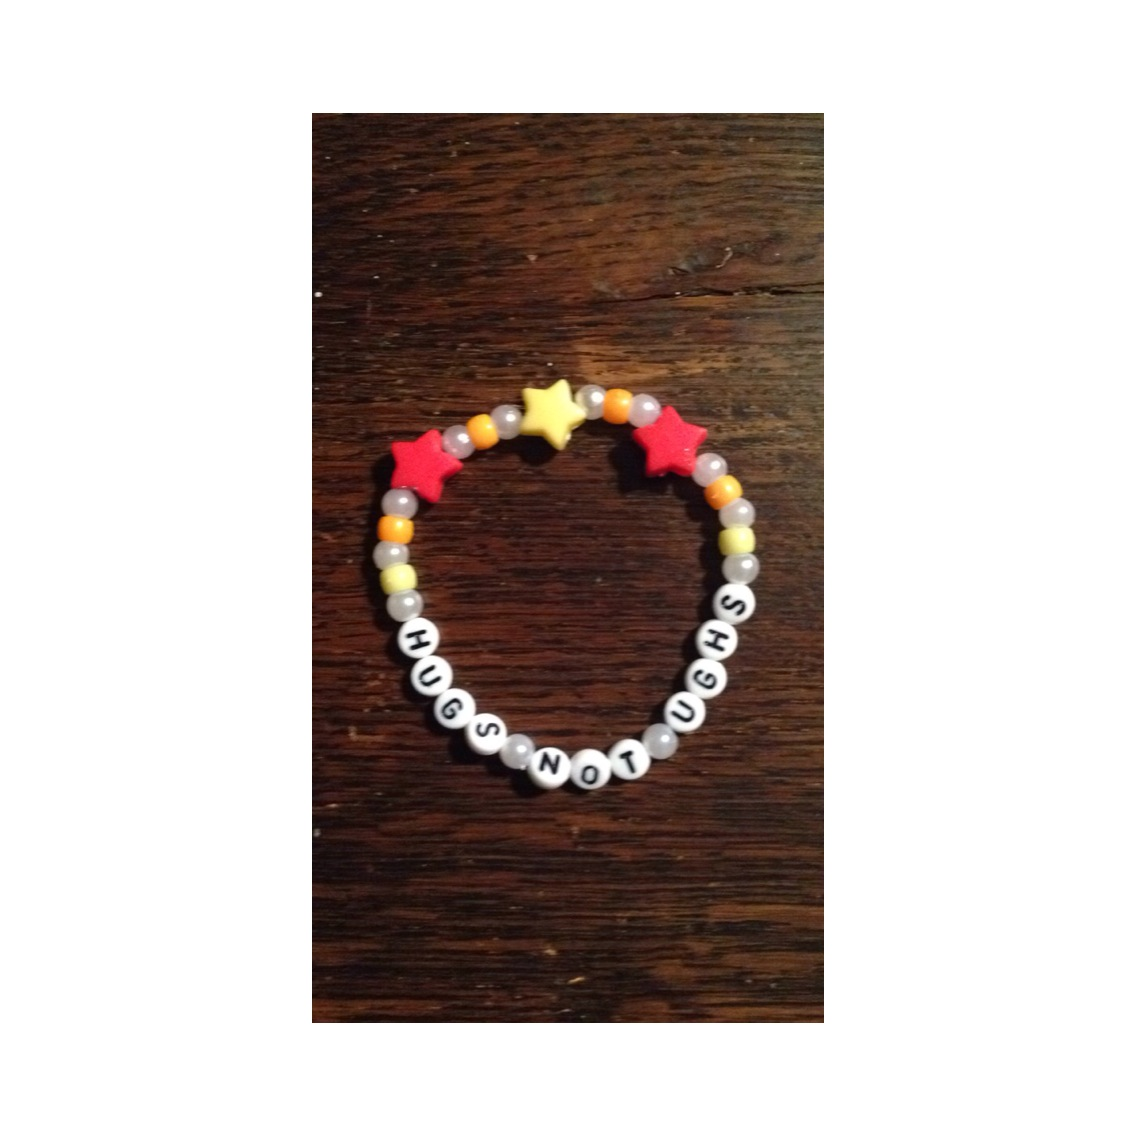 Ezra Koenig Hugs Not Ughs Lettered Pony Bead Bracelet On Storenvy